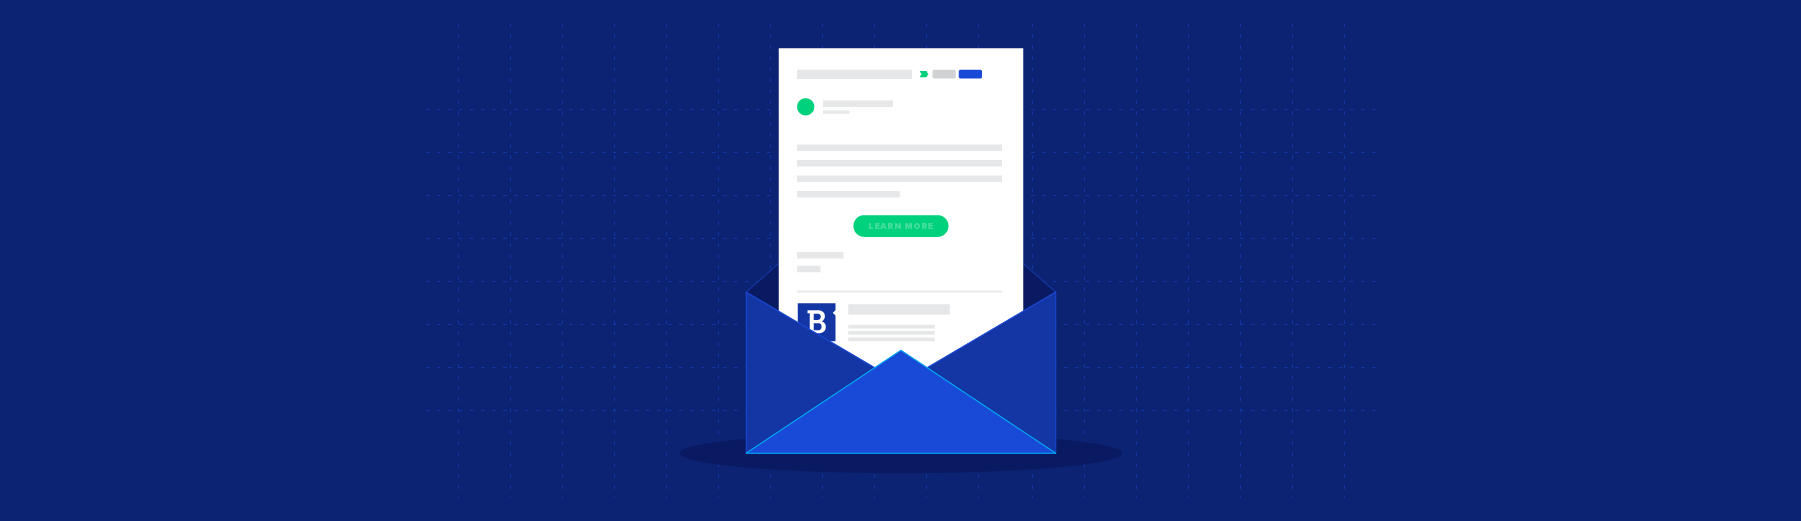 7 blueprints for email copywriting that works + examples | Brafton